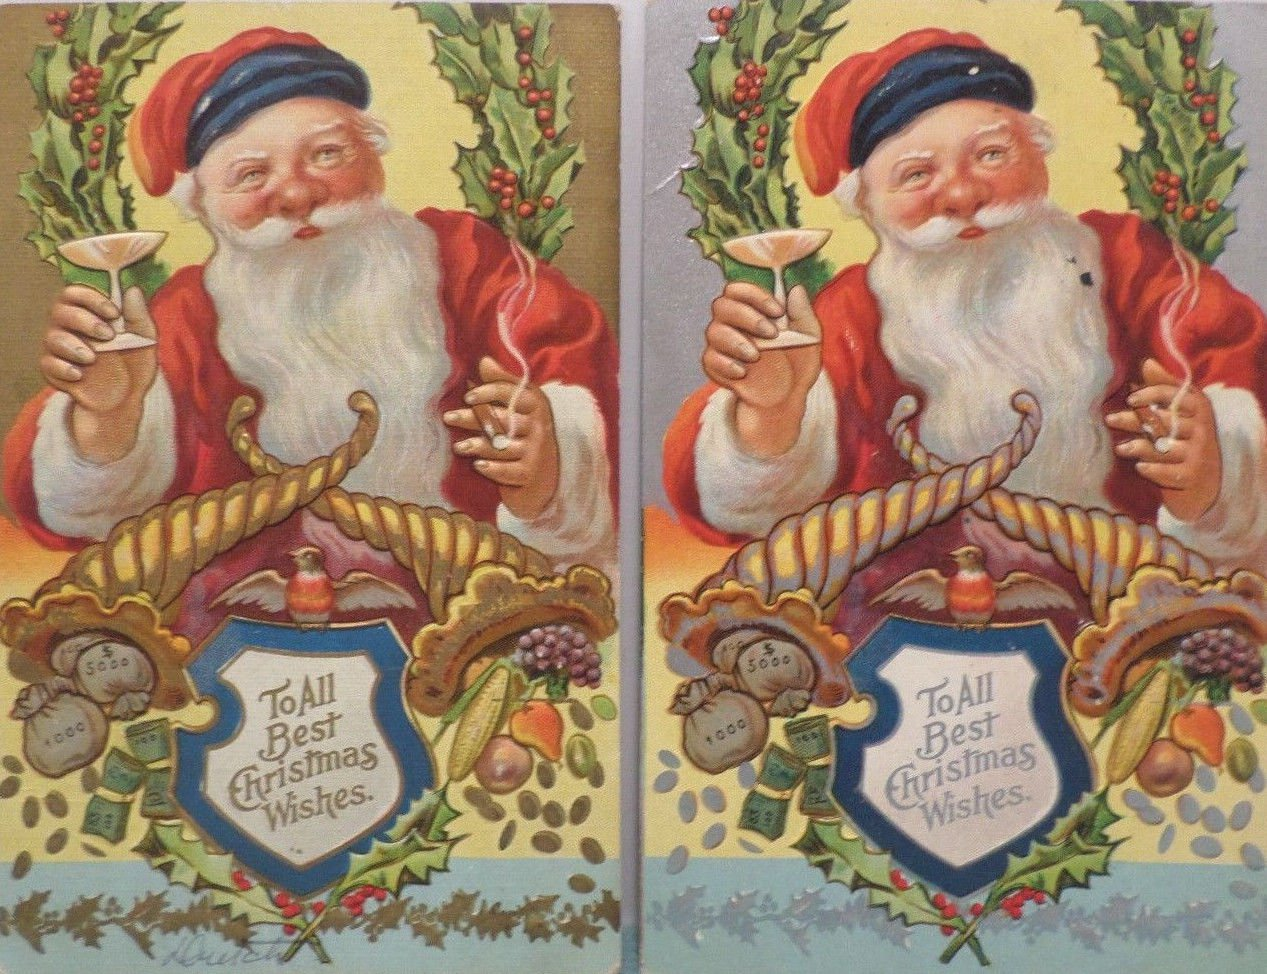 Antique Christmas Postcards Santa Claus Having a Drink and Smoking a Cigar 2 pcs